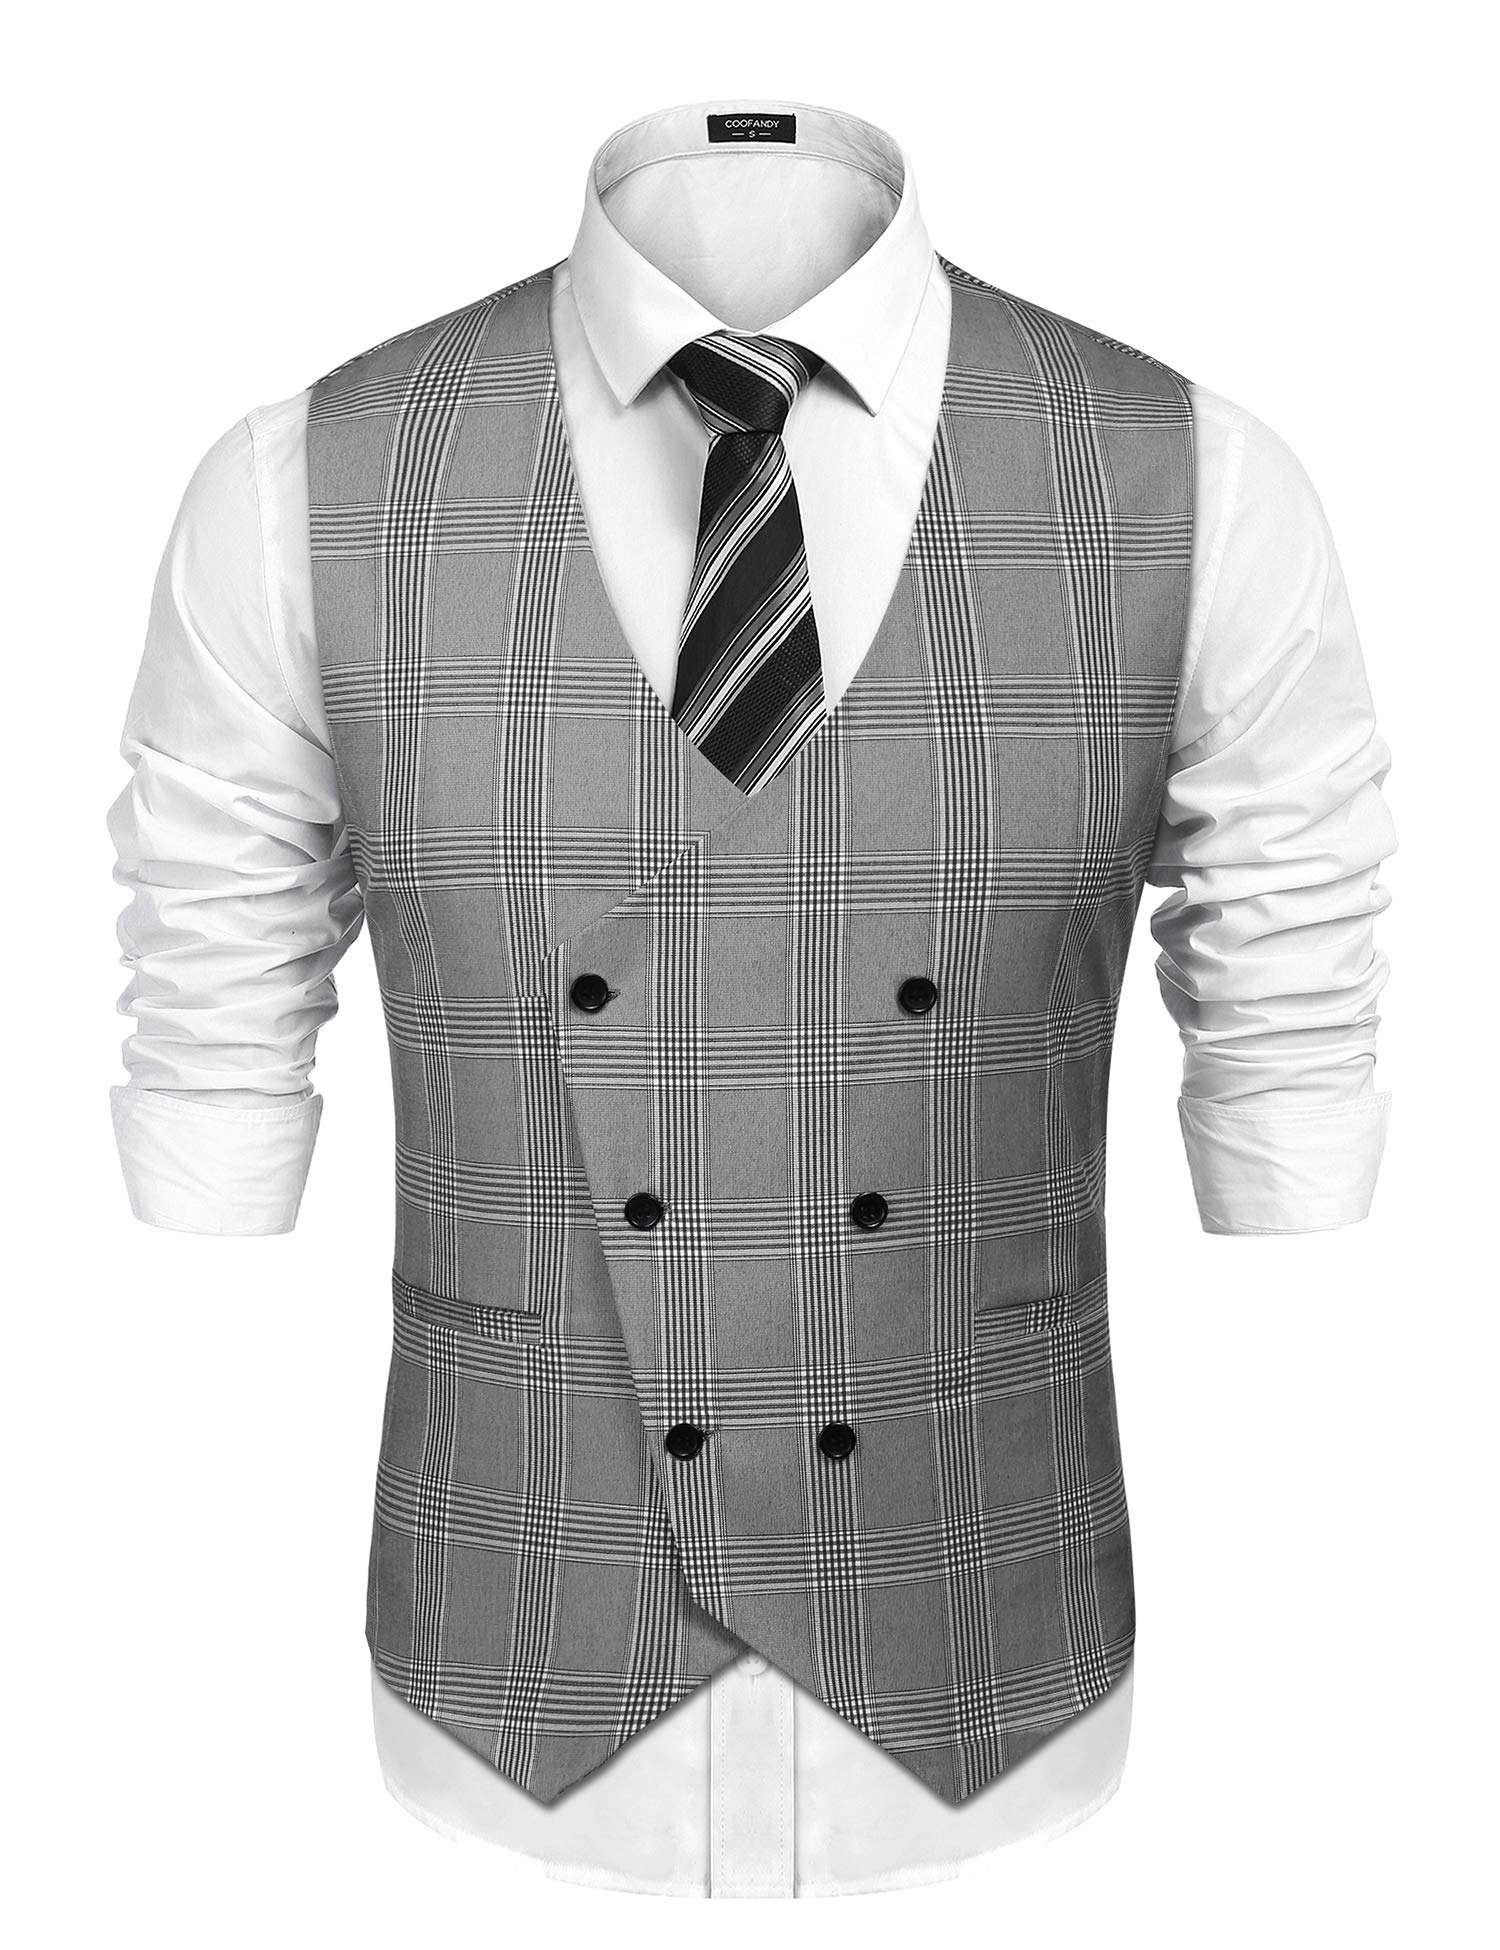 COOFANDY Men's V-Neck Sleeveless Slim Fit Vest Jacket Business Suit Dress Vest, Grey, X-Large by COOFANDY